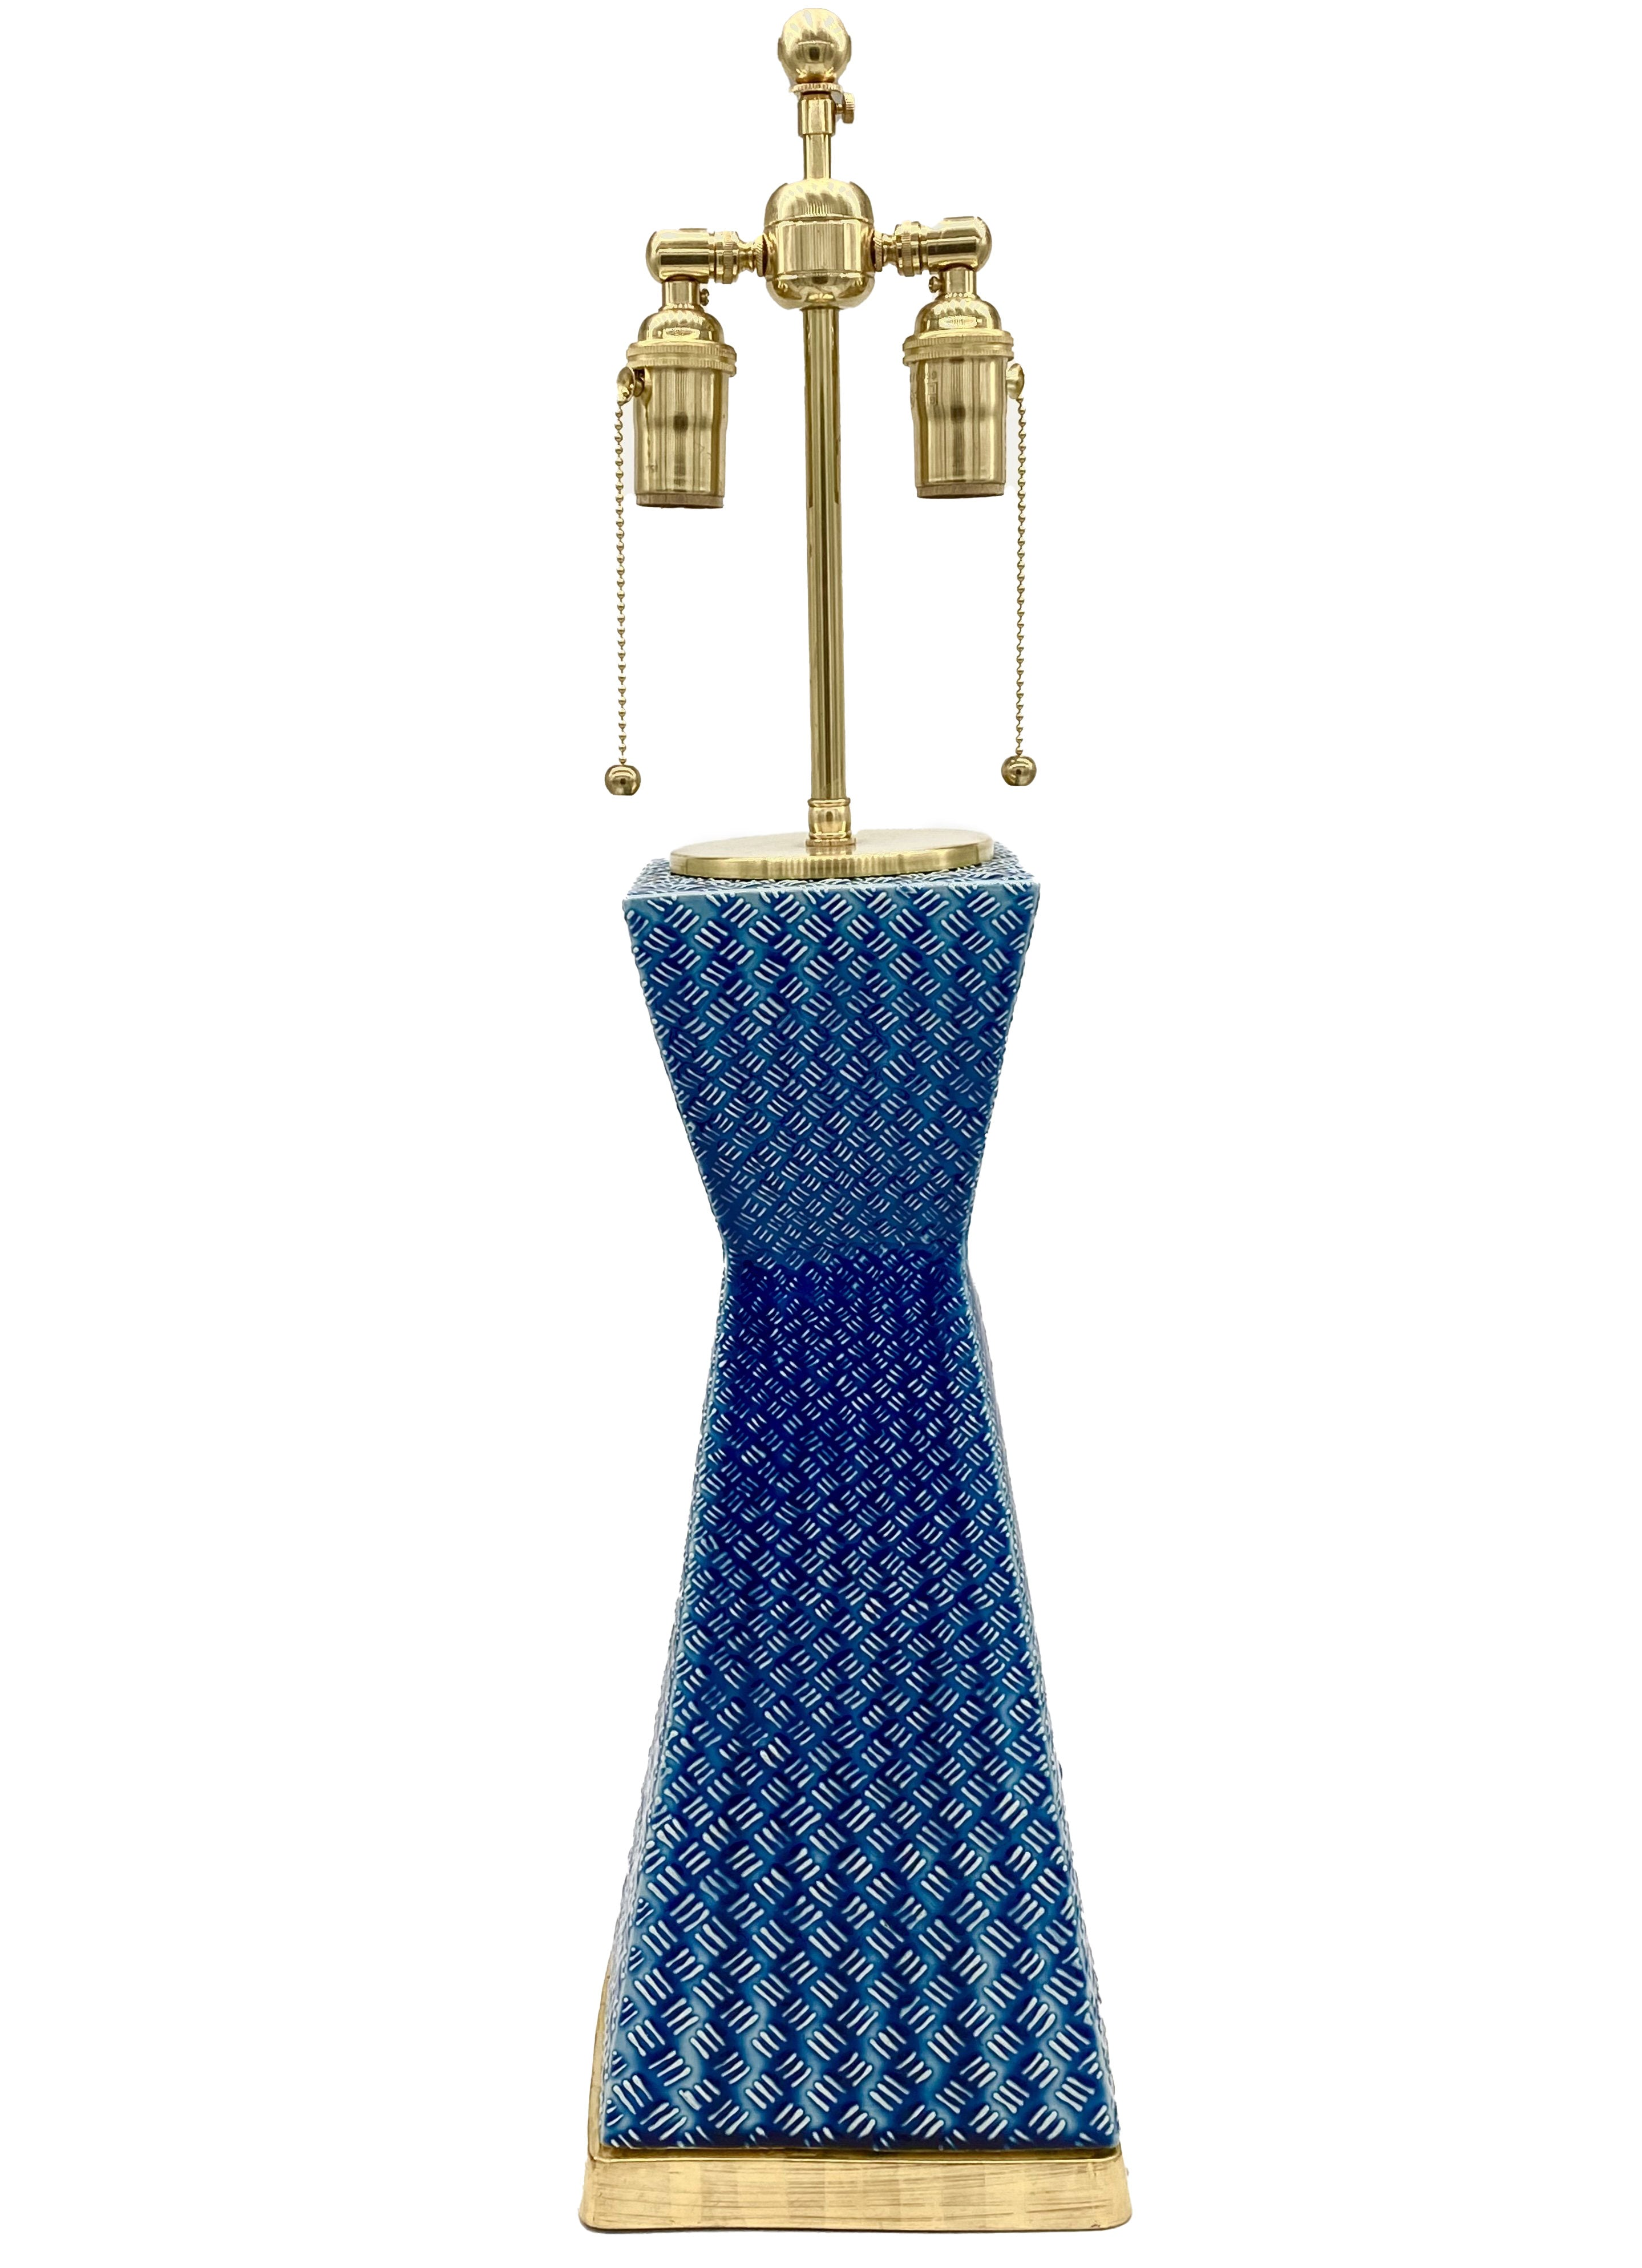 Christopher Spitzmiller Melissa Lamp with Tight Basket Weave